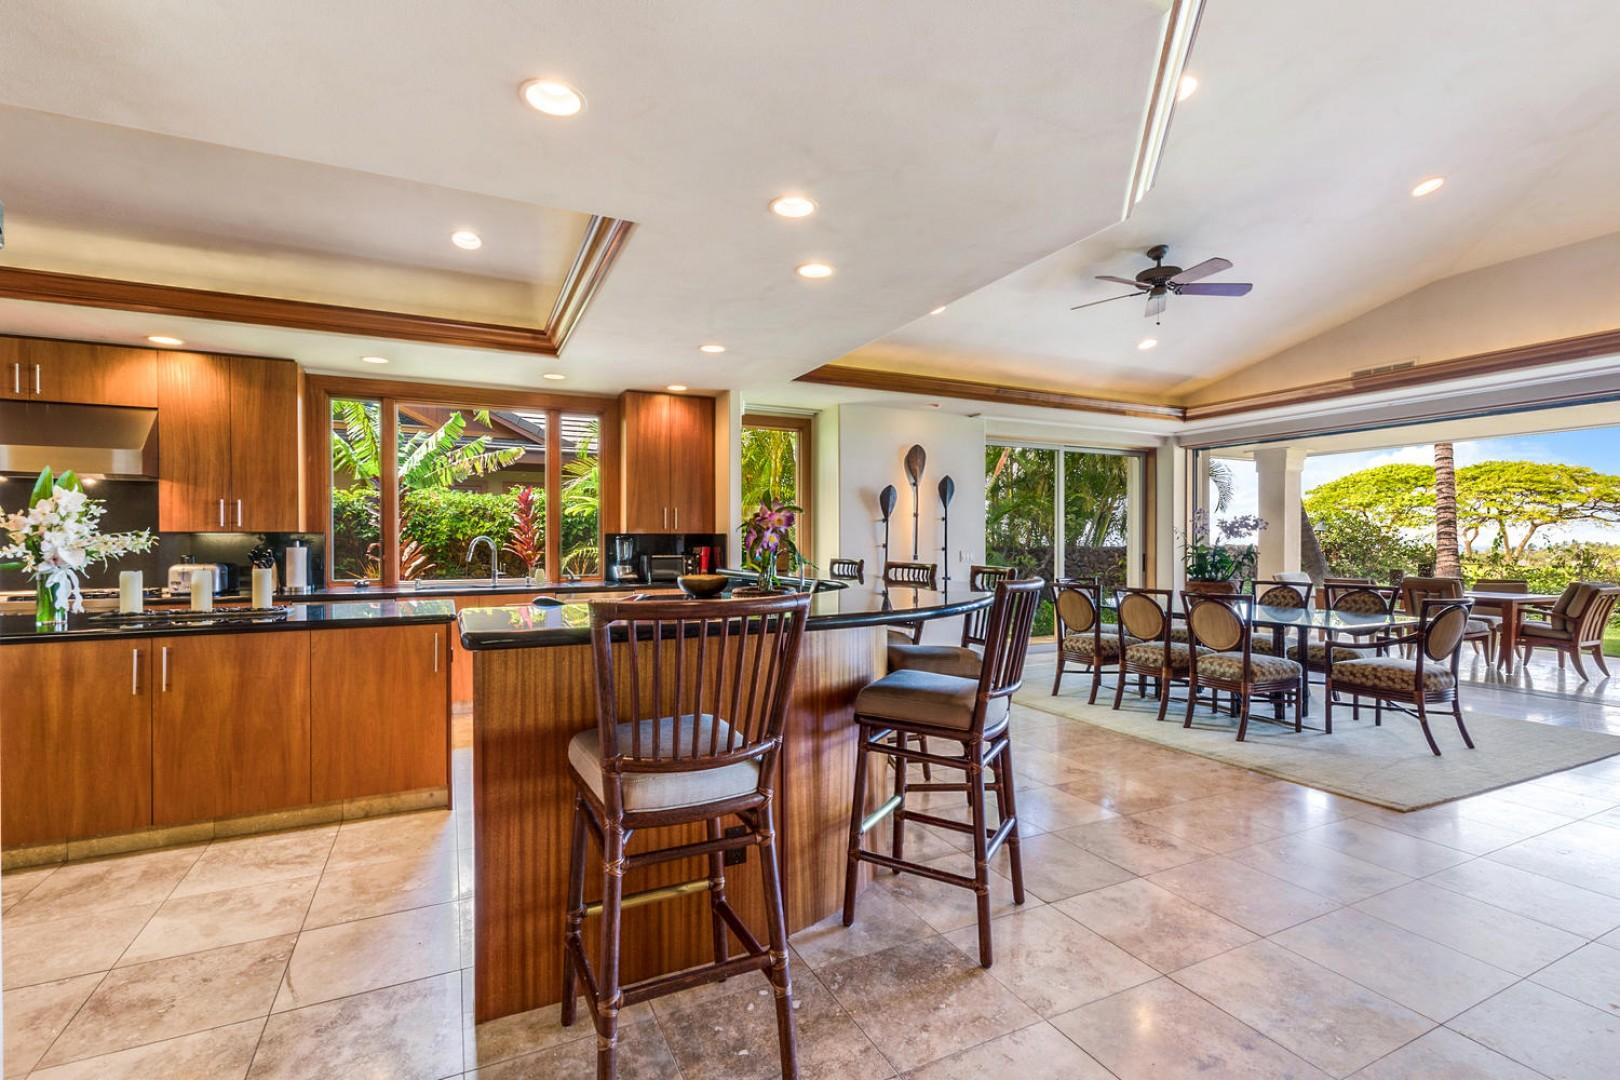 Wide view of kitchen bar seating and formal dining area for eight, with lanai seating beyond.